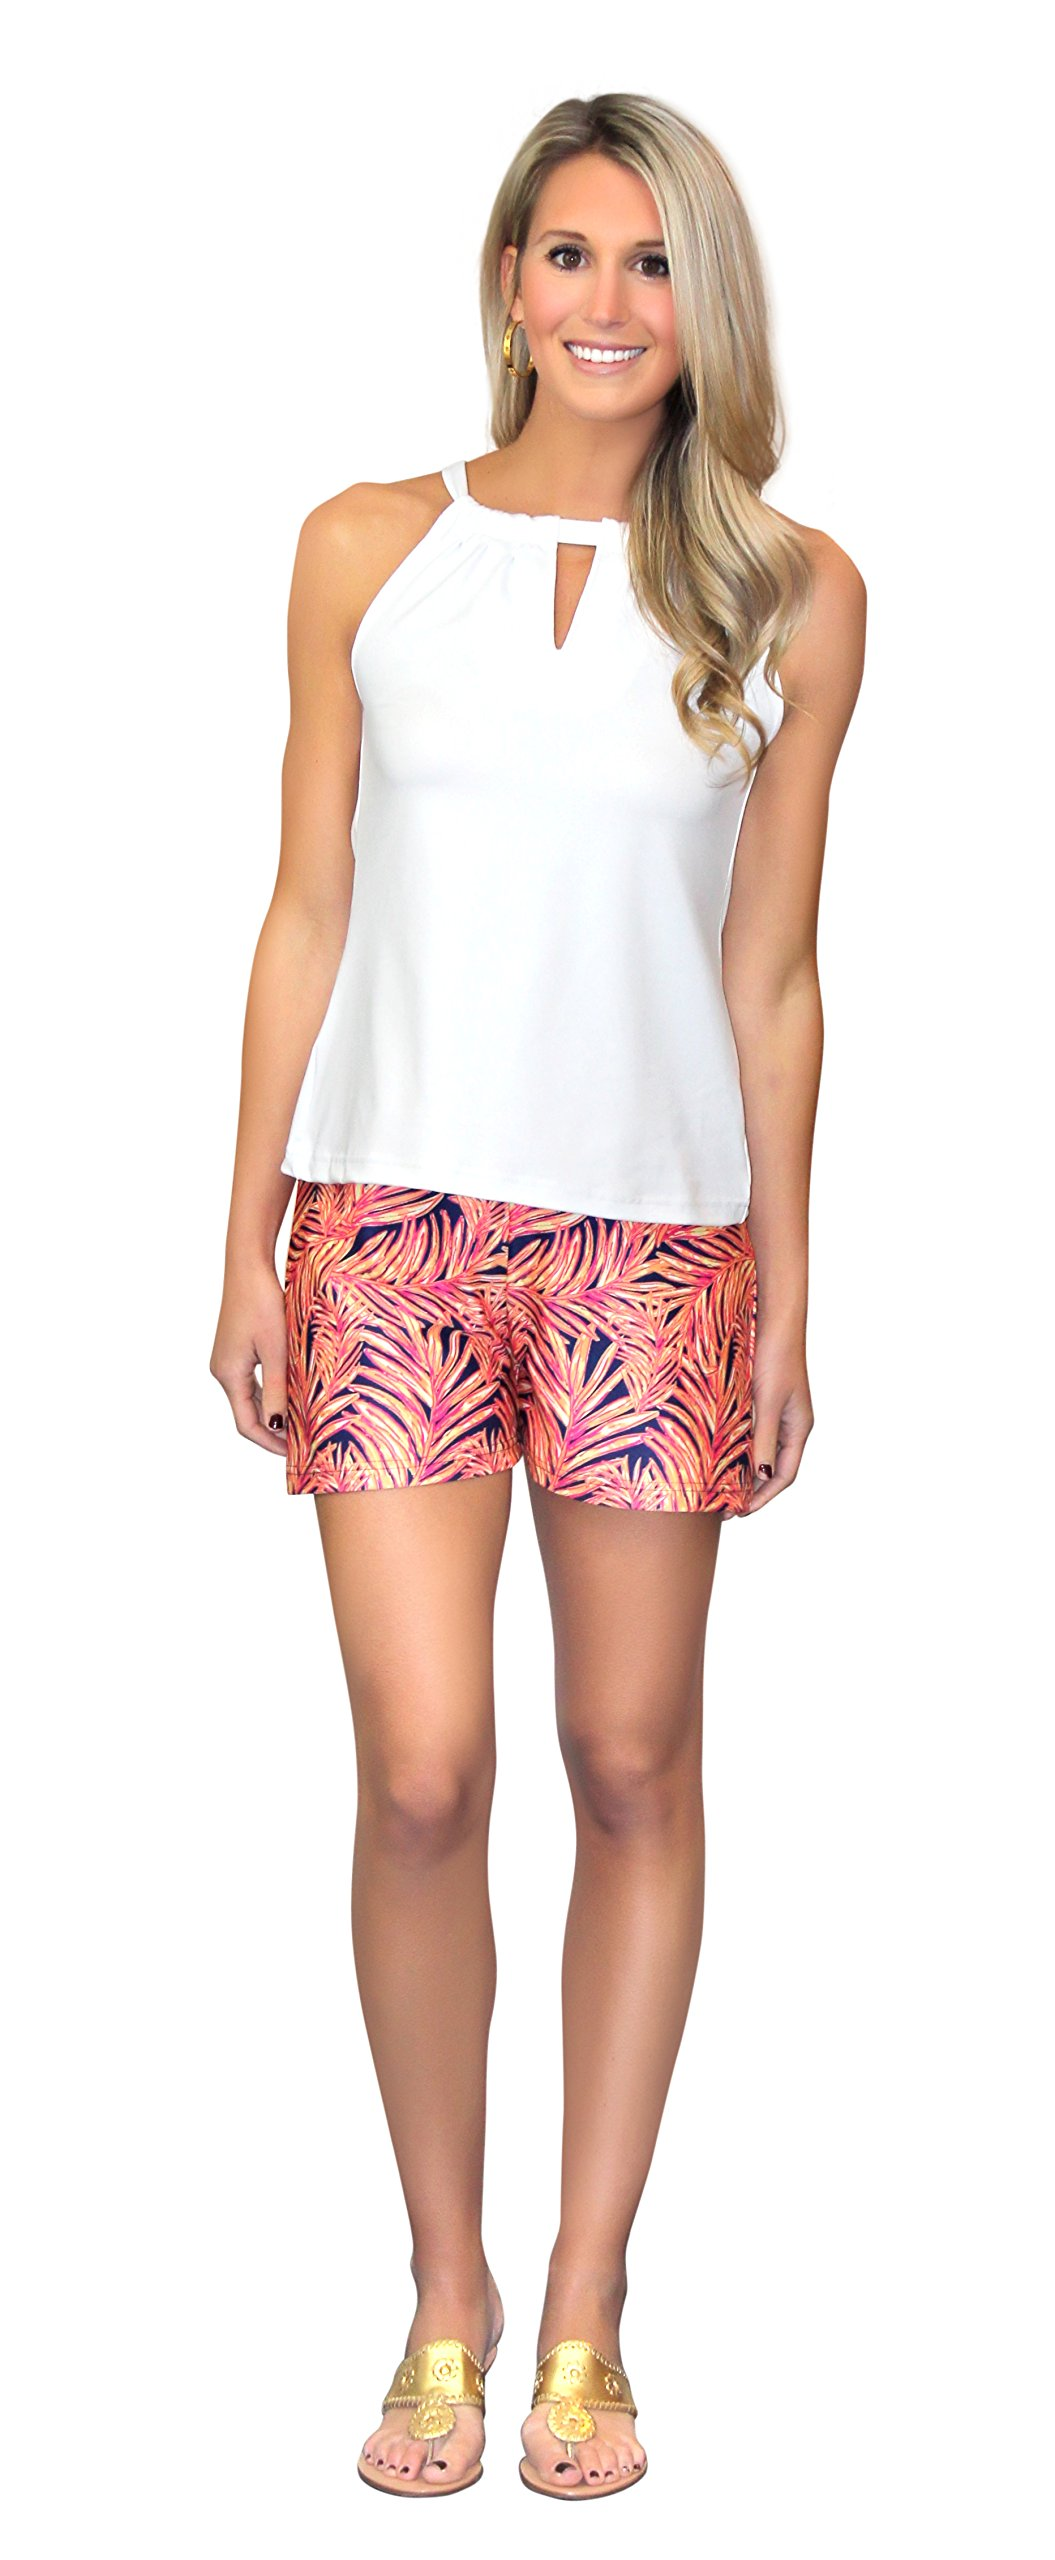 Bridget Shorts in In The Palm Of My Hand (L) by Kaeli Smith